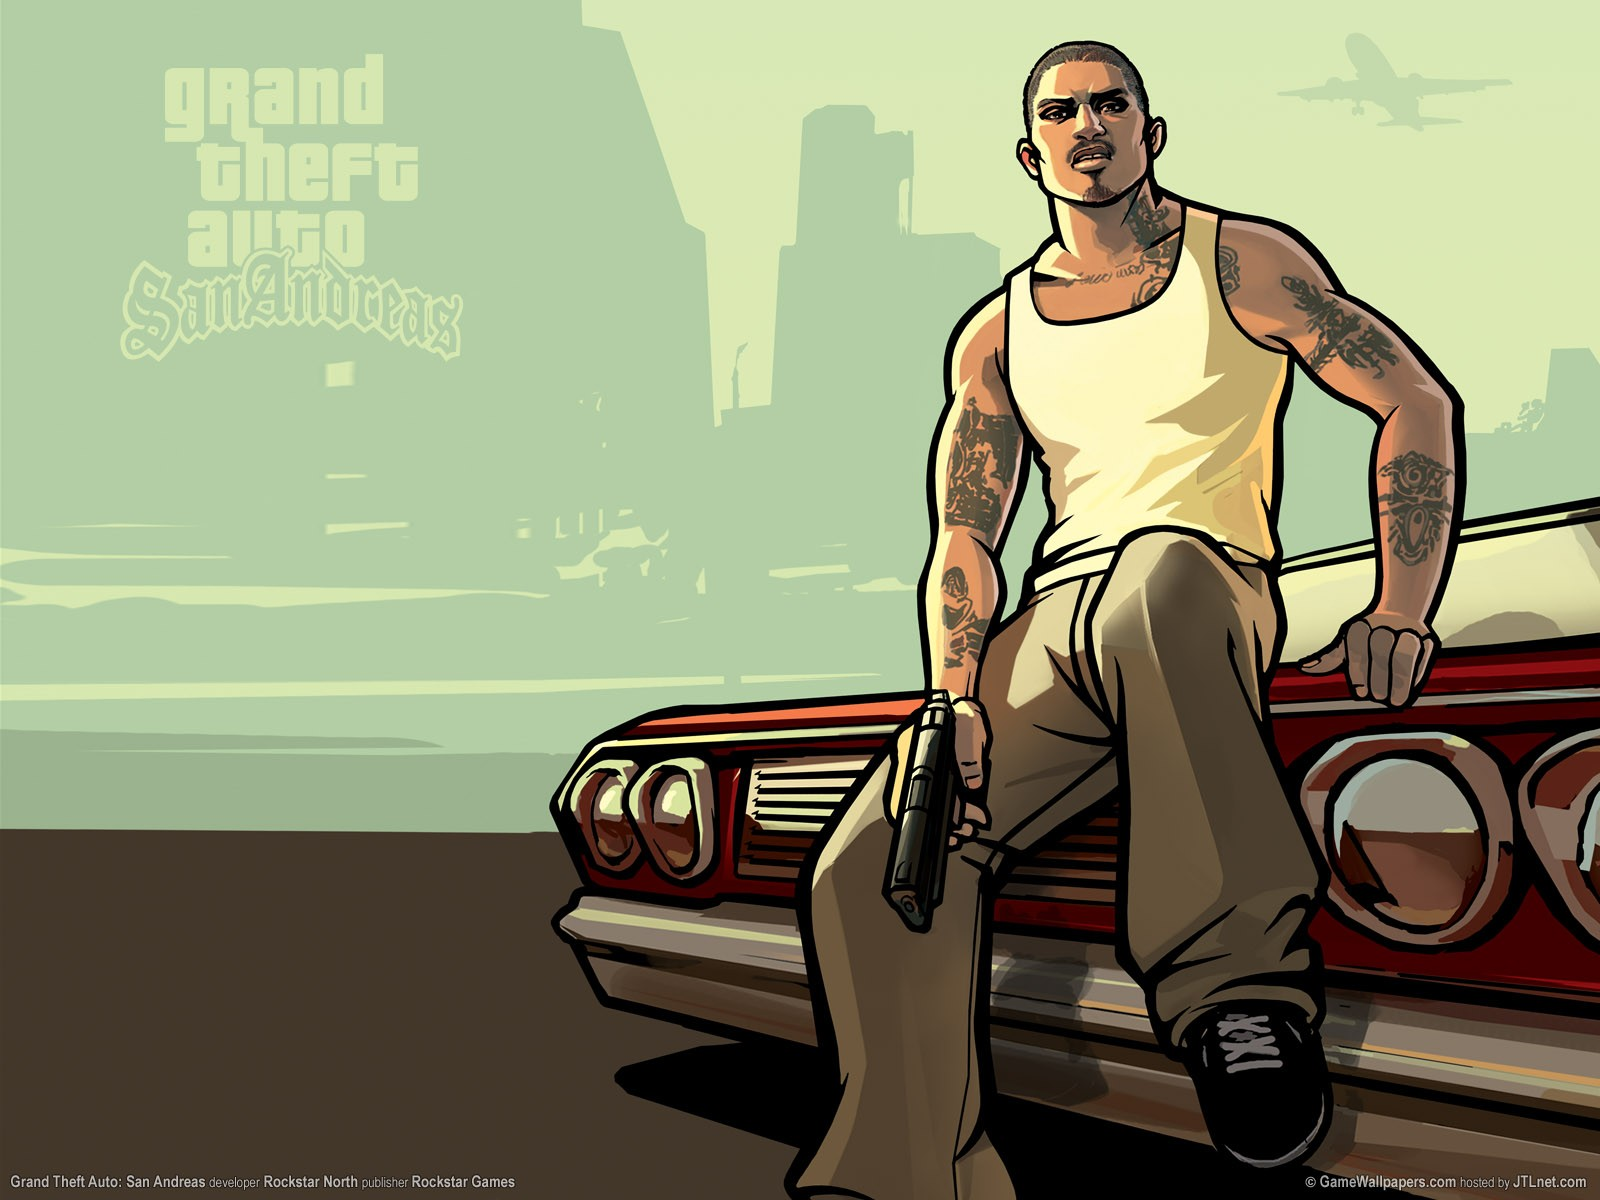 Grand-Theft-Auto-San-Andreas-1.jpg